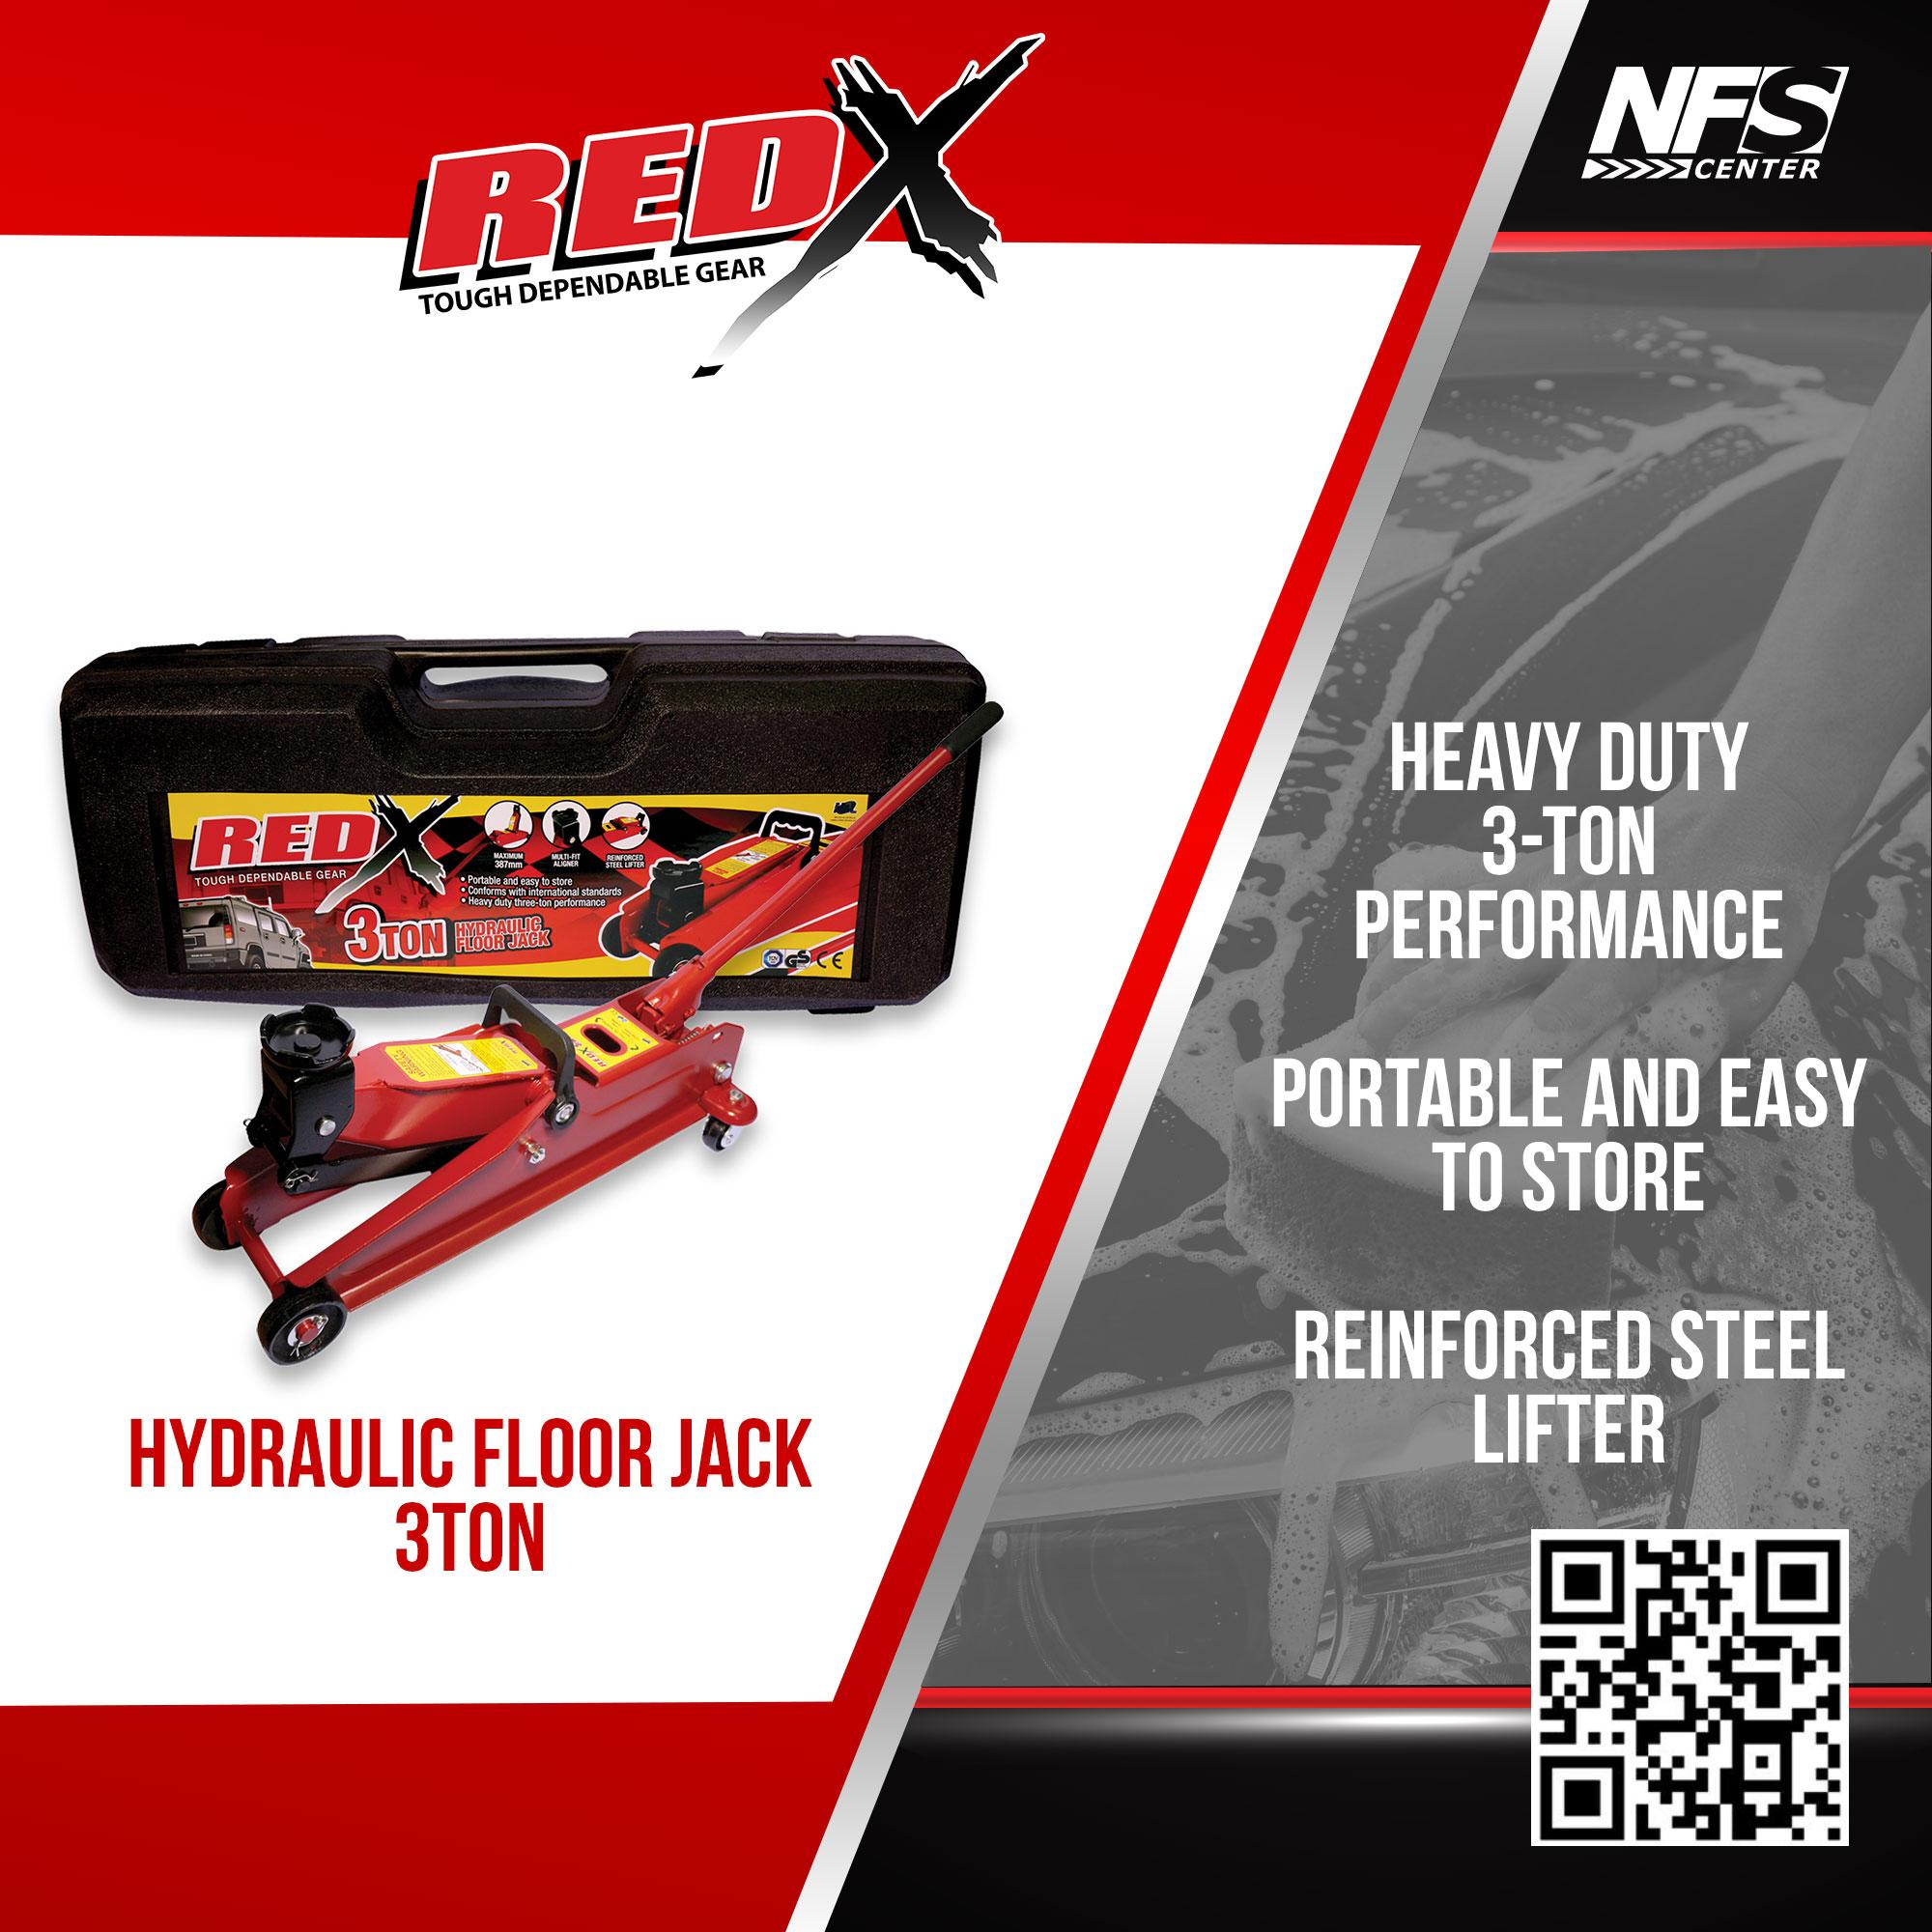 Nfsc - Red X Hydraulic Floor Jack 3ton By Nfsc.